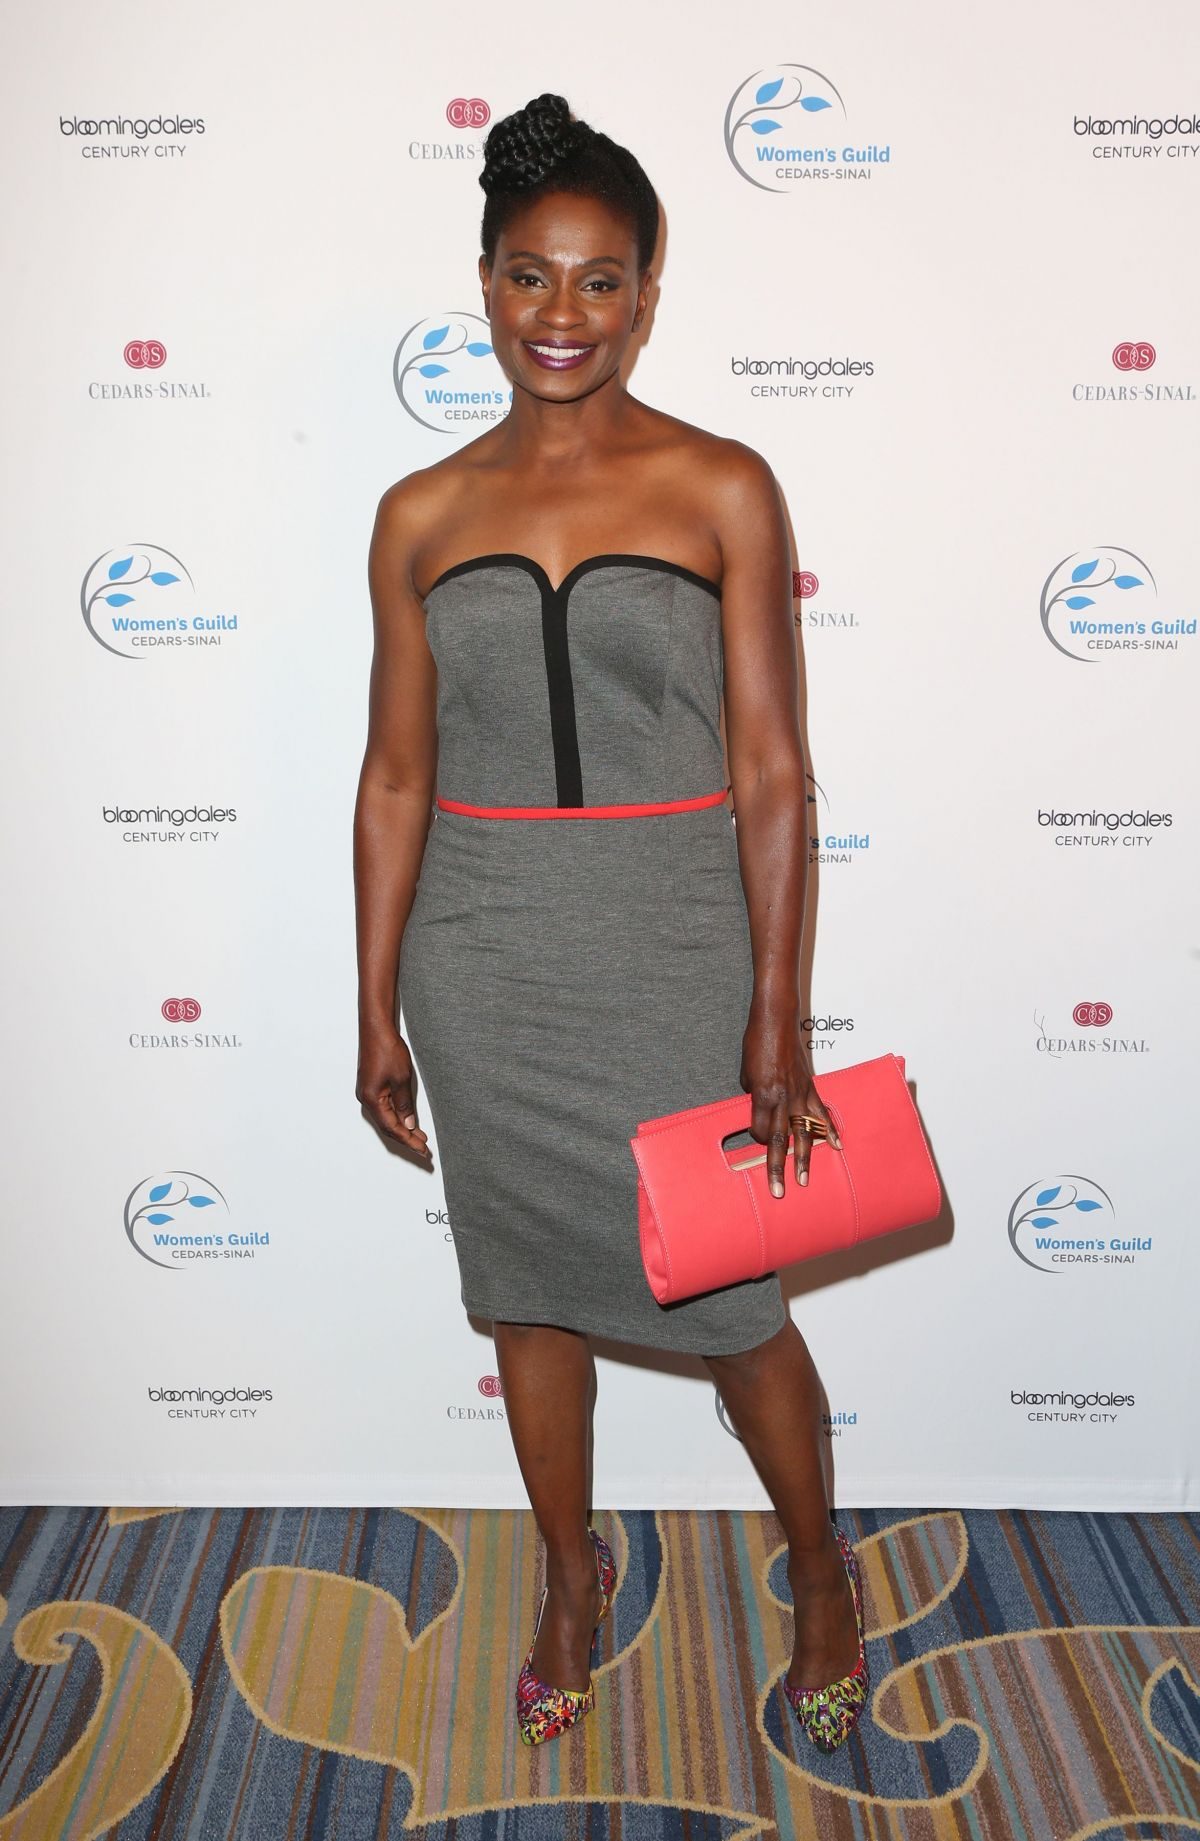 ADINA PORTER at Women's Guild Cedars Sinai Annual Spring Luncheon in Los Angeles 04/20/2017   adina-porter-at-women-s-guild-cedars-sinai-annual-spring-luncheon-in-los-angeles-04-20-2017_2